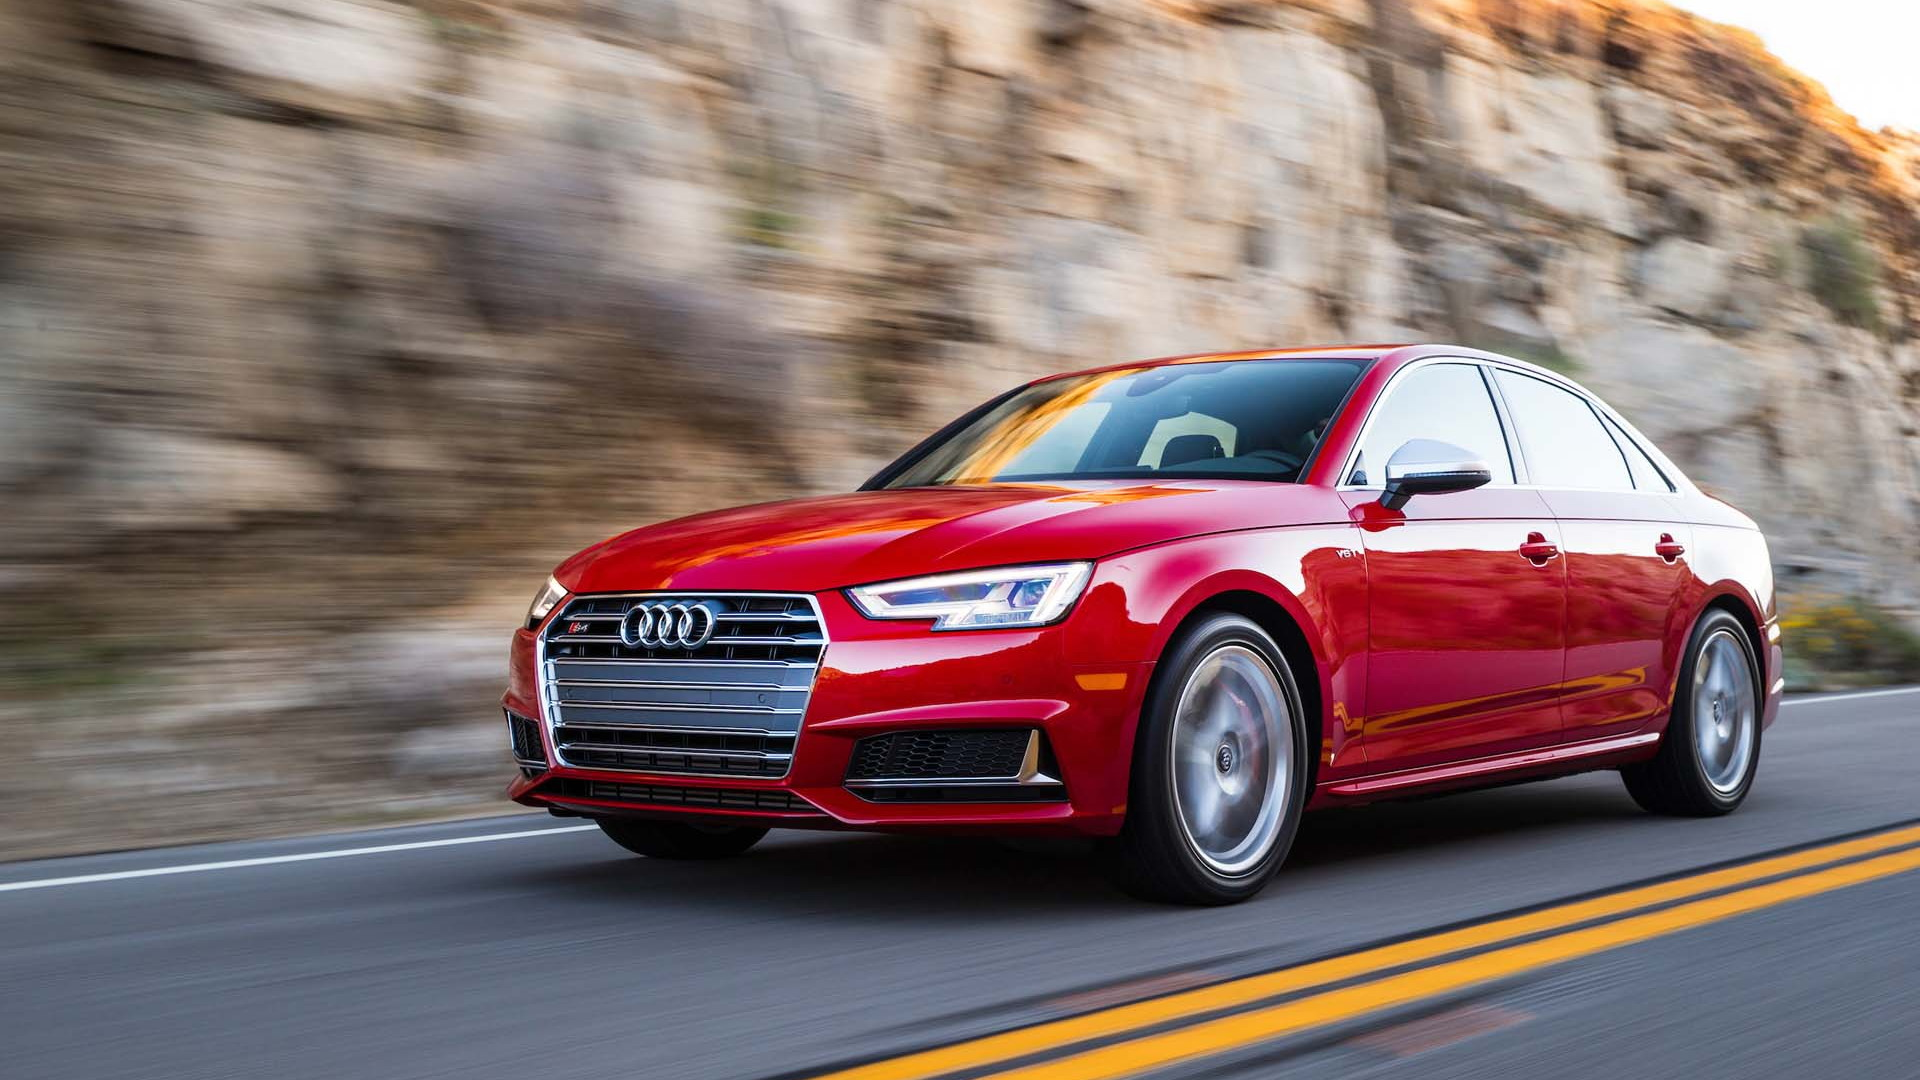 2018 Audi S4/S5 First Drive